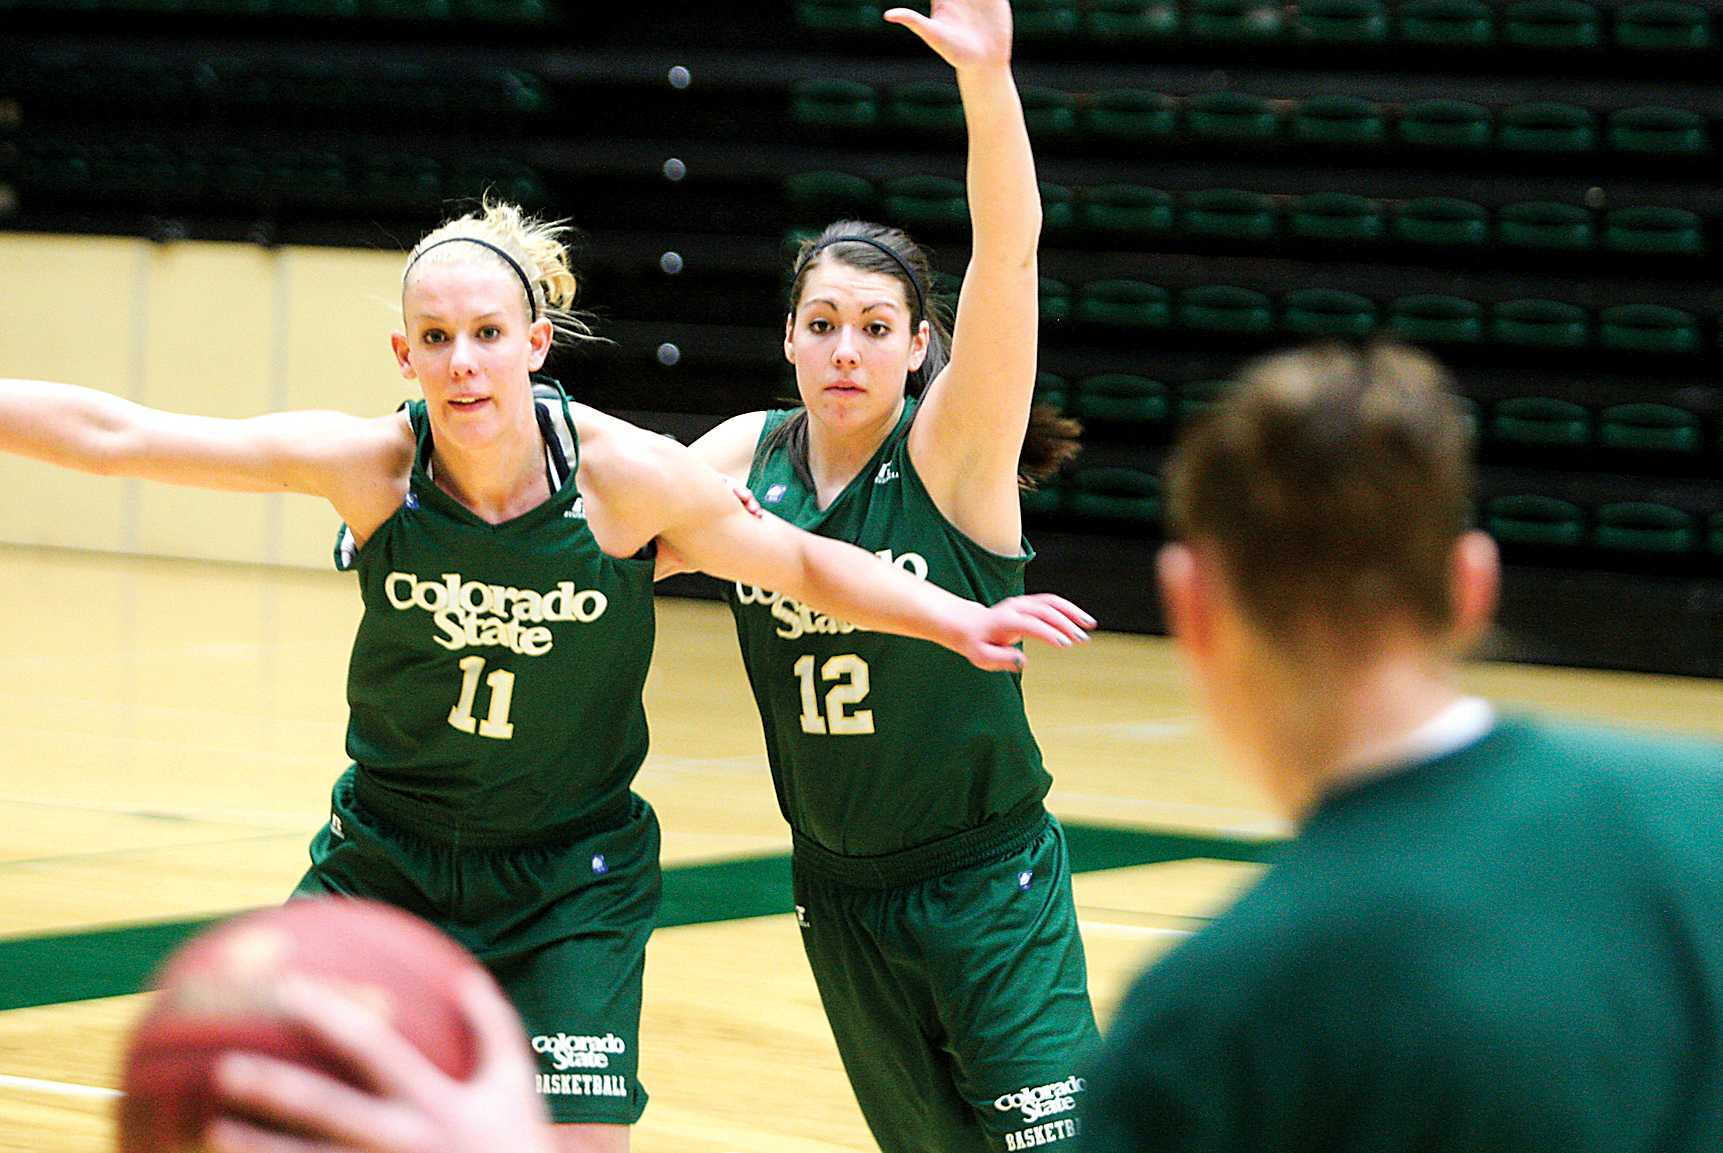 Sam Martin (12) defends Meghan Heimstra (11) at practice on Monday in Moby Arena. The Rams prepare to take on Nevada in Moby Arena at 7 Wednesday night.